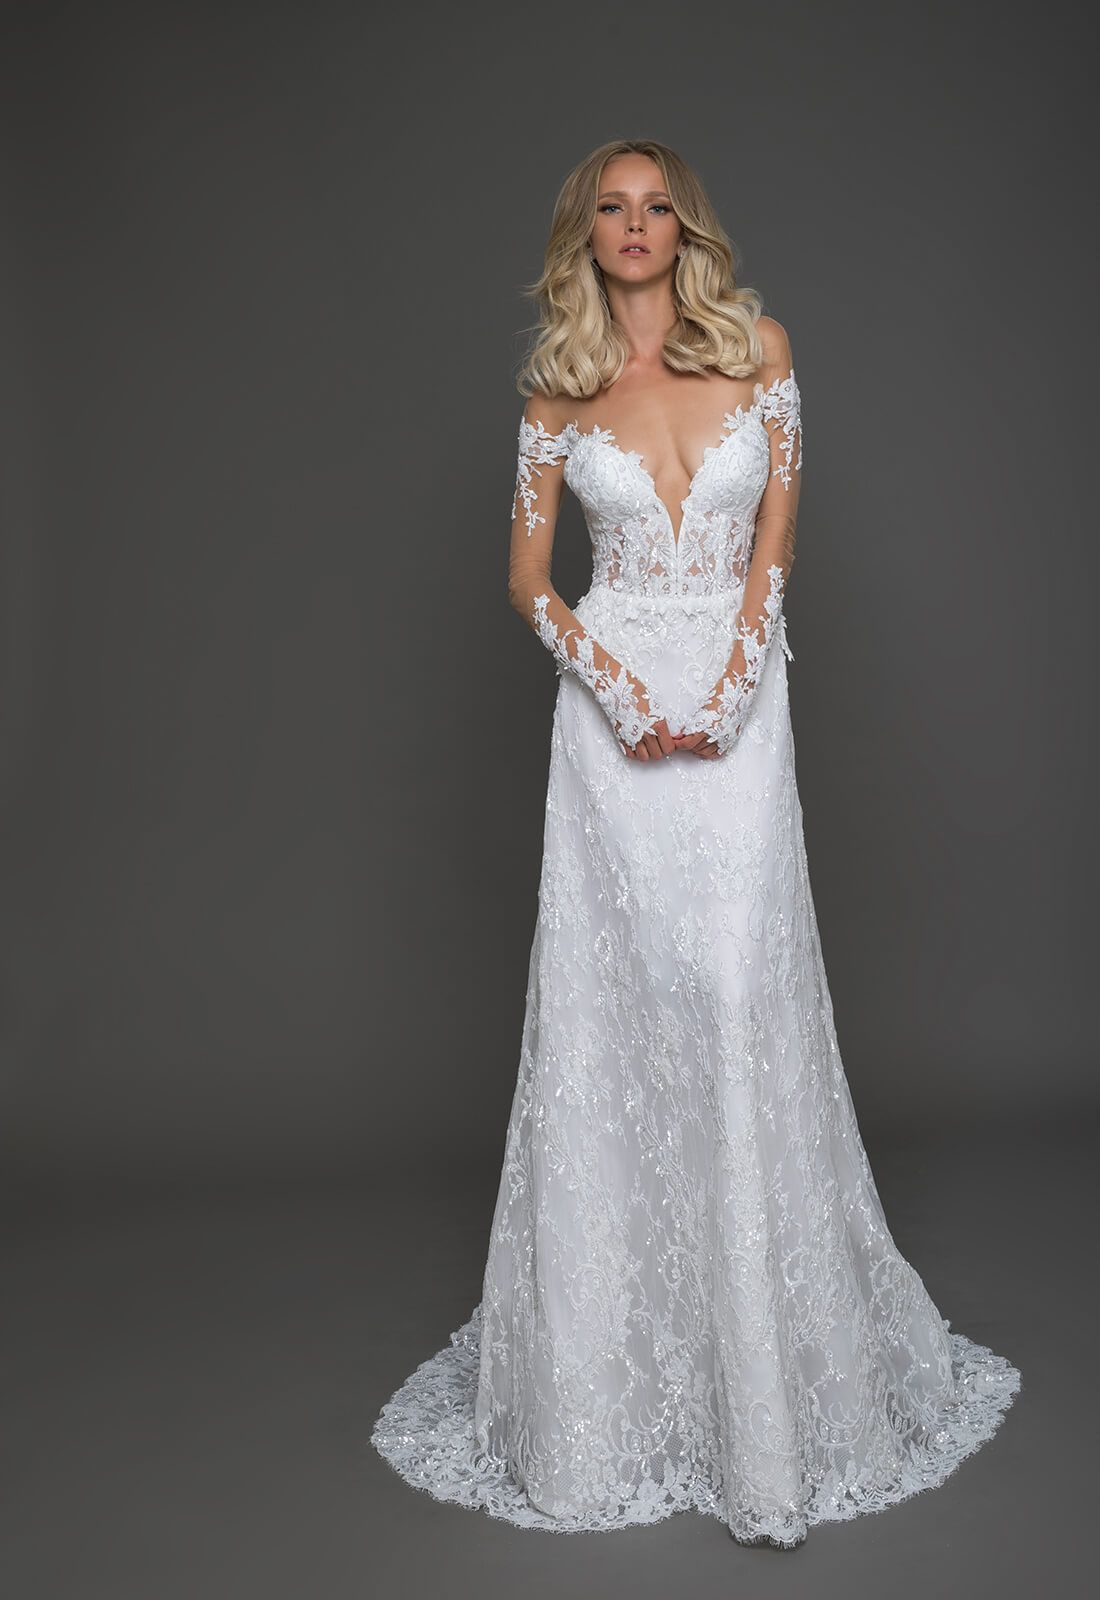 Top Yes But Bottom No Or More Fit And Flare Pnina Wedding